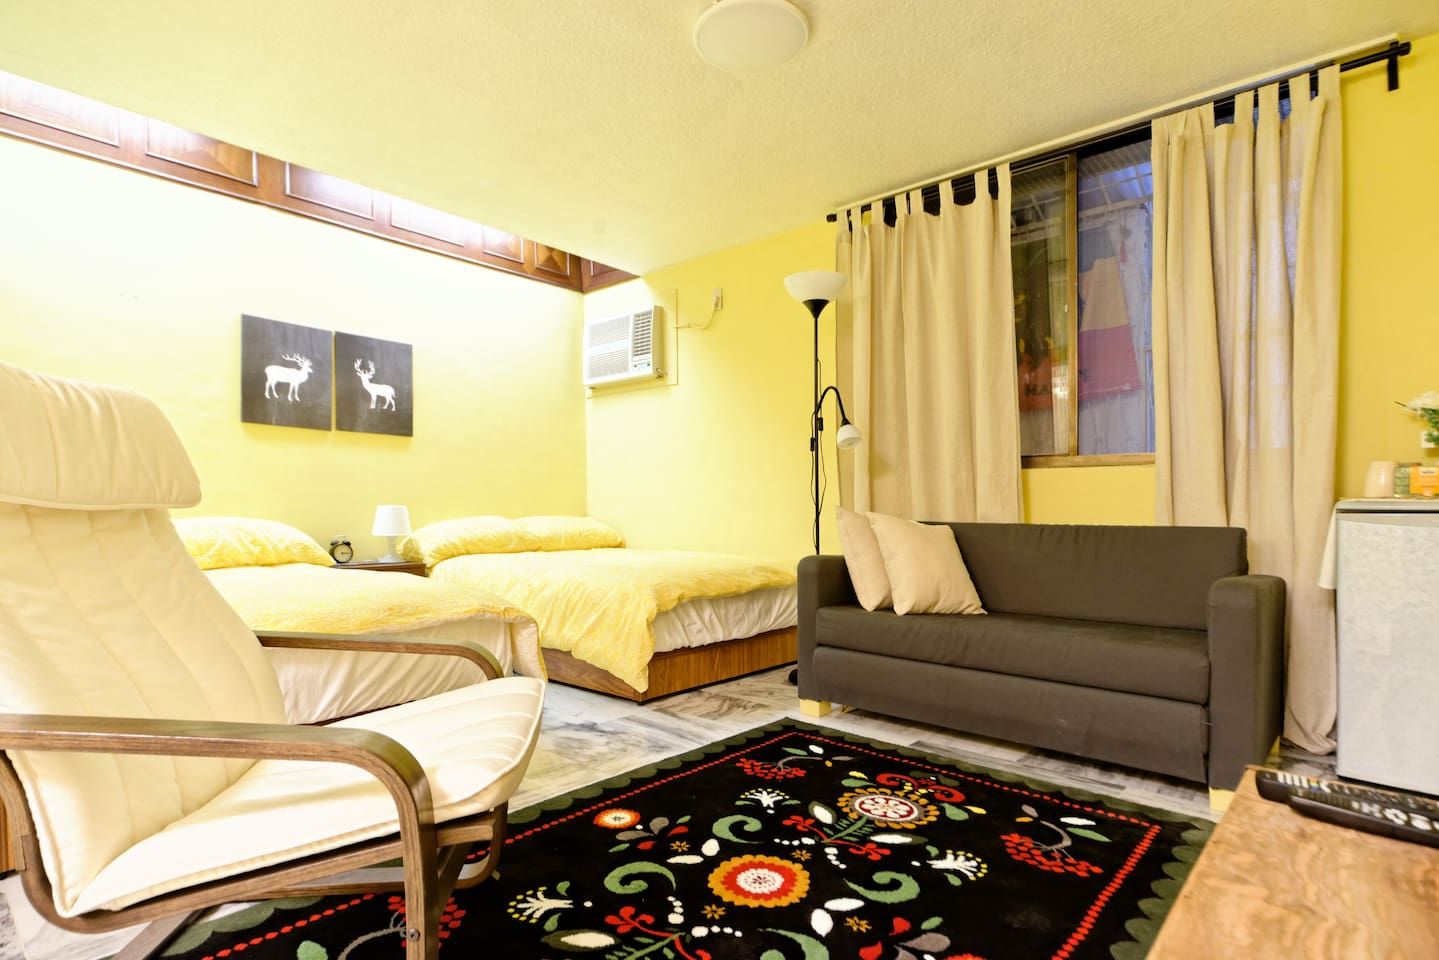 3. Studio Apartment in Ximen MRT